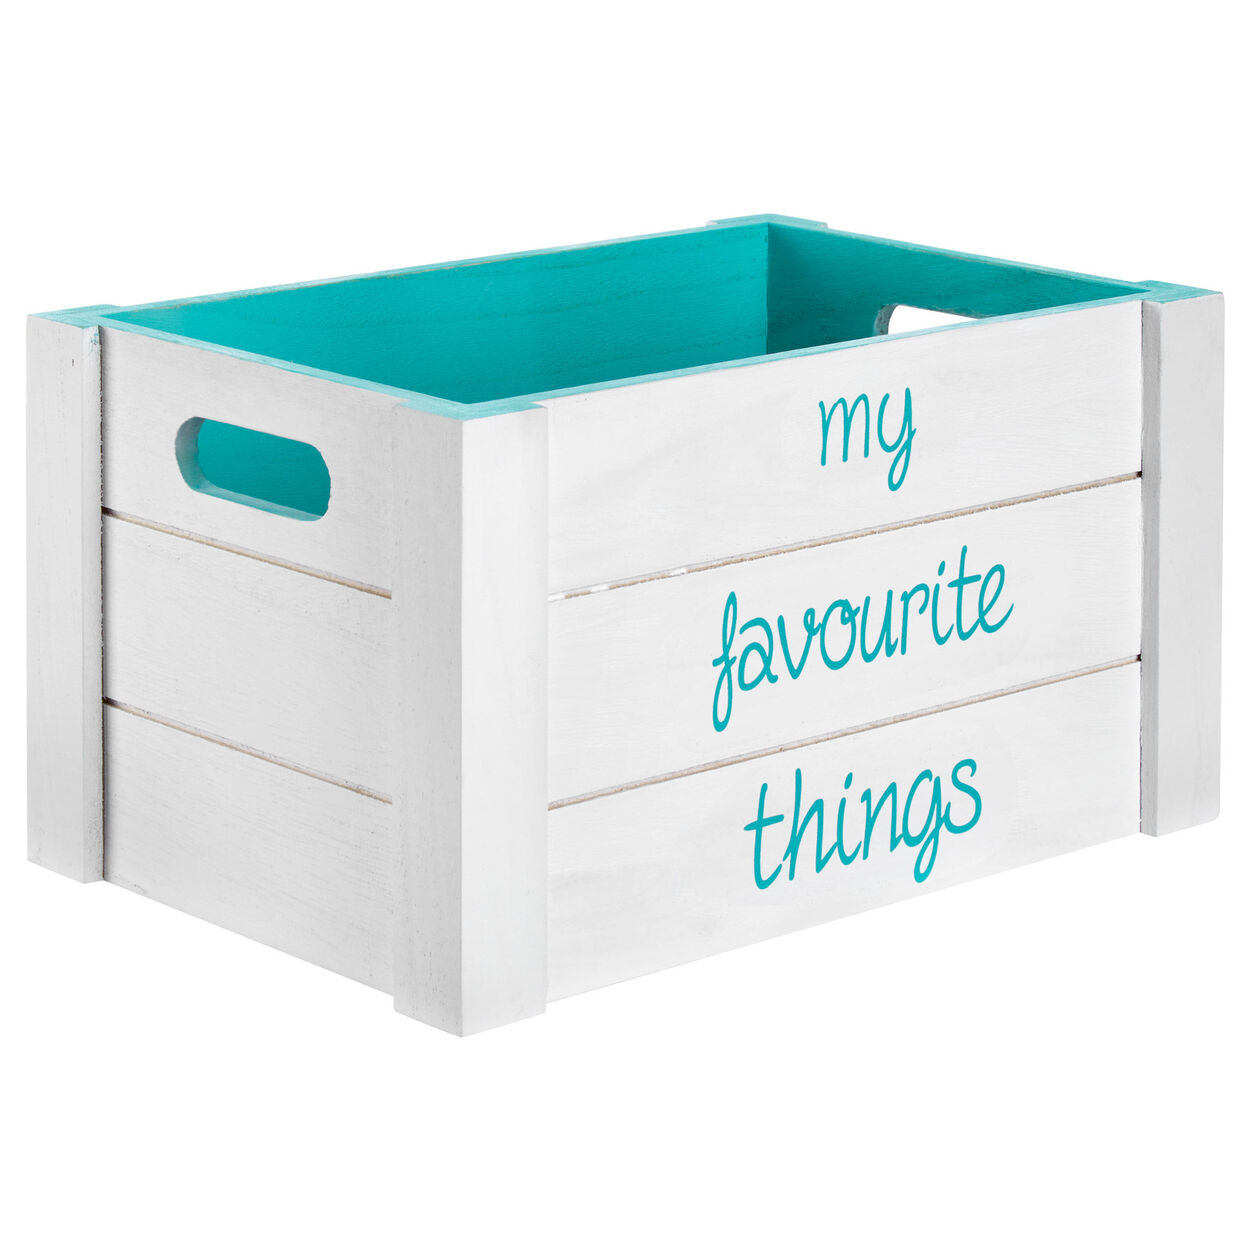 Medium Favourite Things Wooden Crate